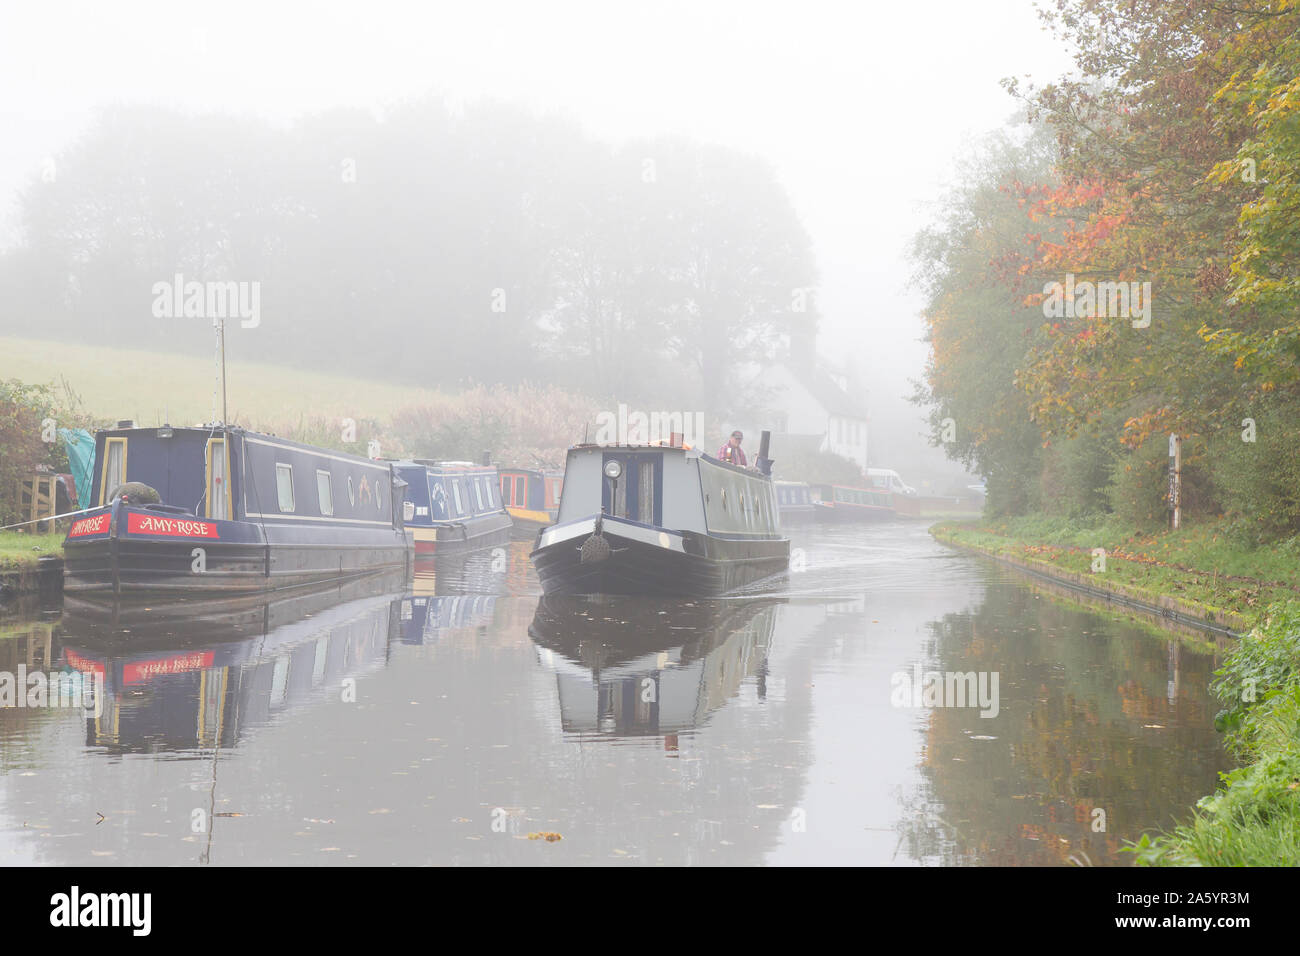 Stourbridge, UK. 23rd October, 2019. UK weather: heavy fog slows down traffic for commuters today, although some travellers are used to the slow speed of commuting as we see a UK narrowboat making its way in the 'slow' lane of a british canal, moving slowly through the early  morning mist. Credit: Lee Hudson/Alamy Live News Stock Photo